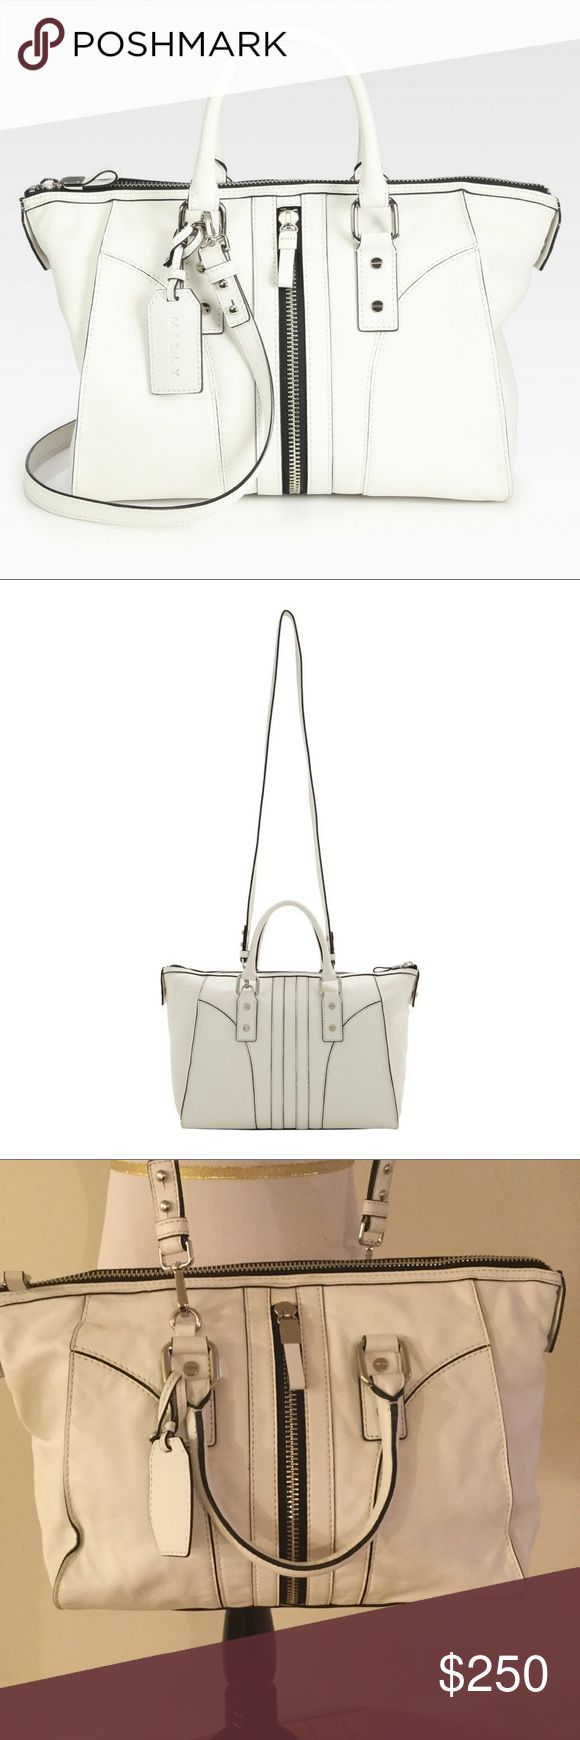 Milly Jayden Satchel White leather Jayden satchel by Milly. Carried twice, like new. Silver zip and hardware, black piping detail, rolled handles and removal crossbody strap. Interior zip plus two patch pockets. Milly Bags Satchels